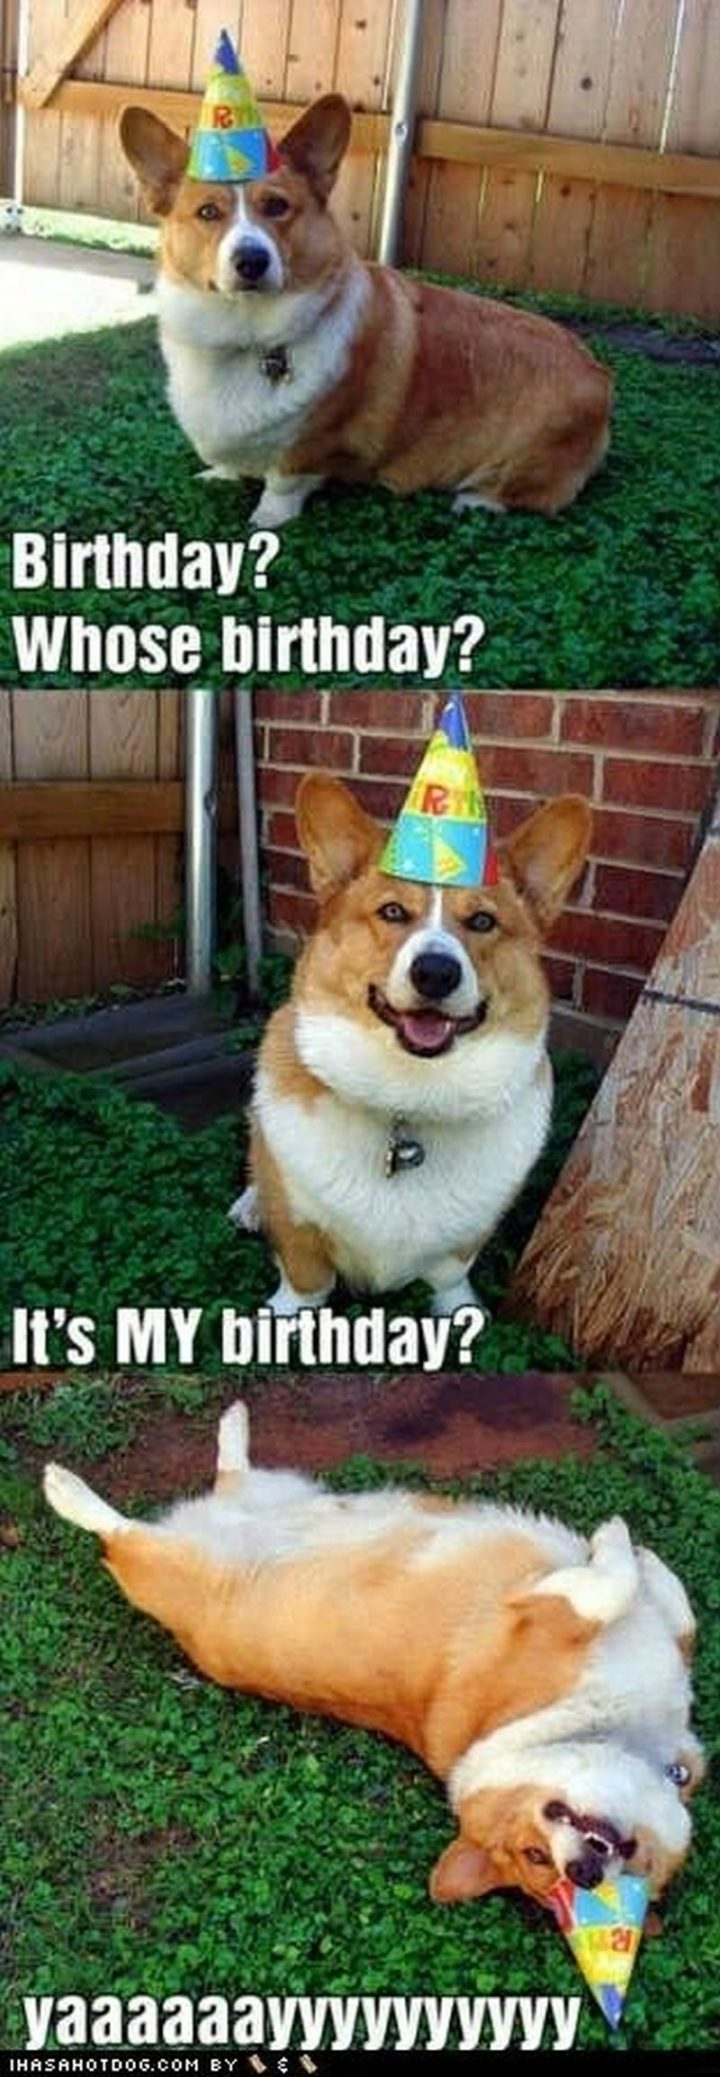 "101 Happy Birthday Dog Memes - ""Birthday? Whose birthday? It's MY birthday. Yaaaaaayyyyyyyyyy."""